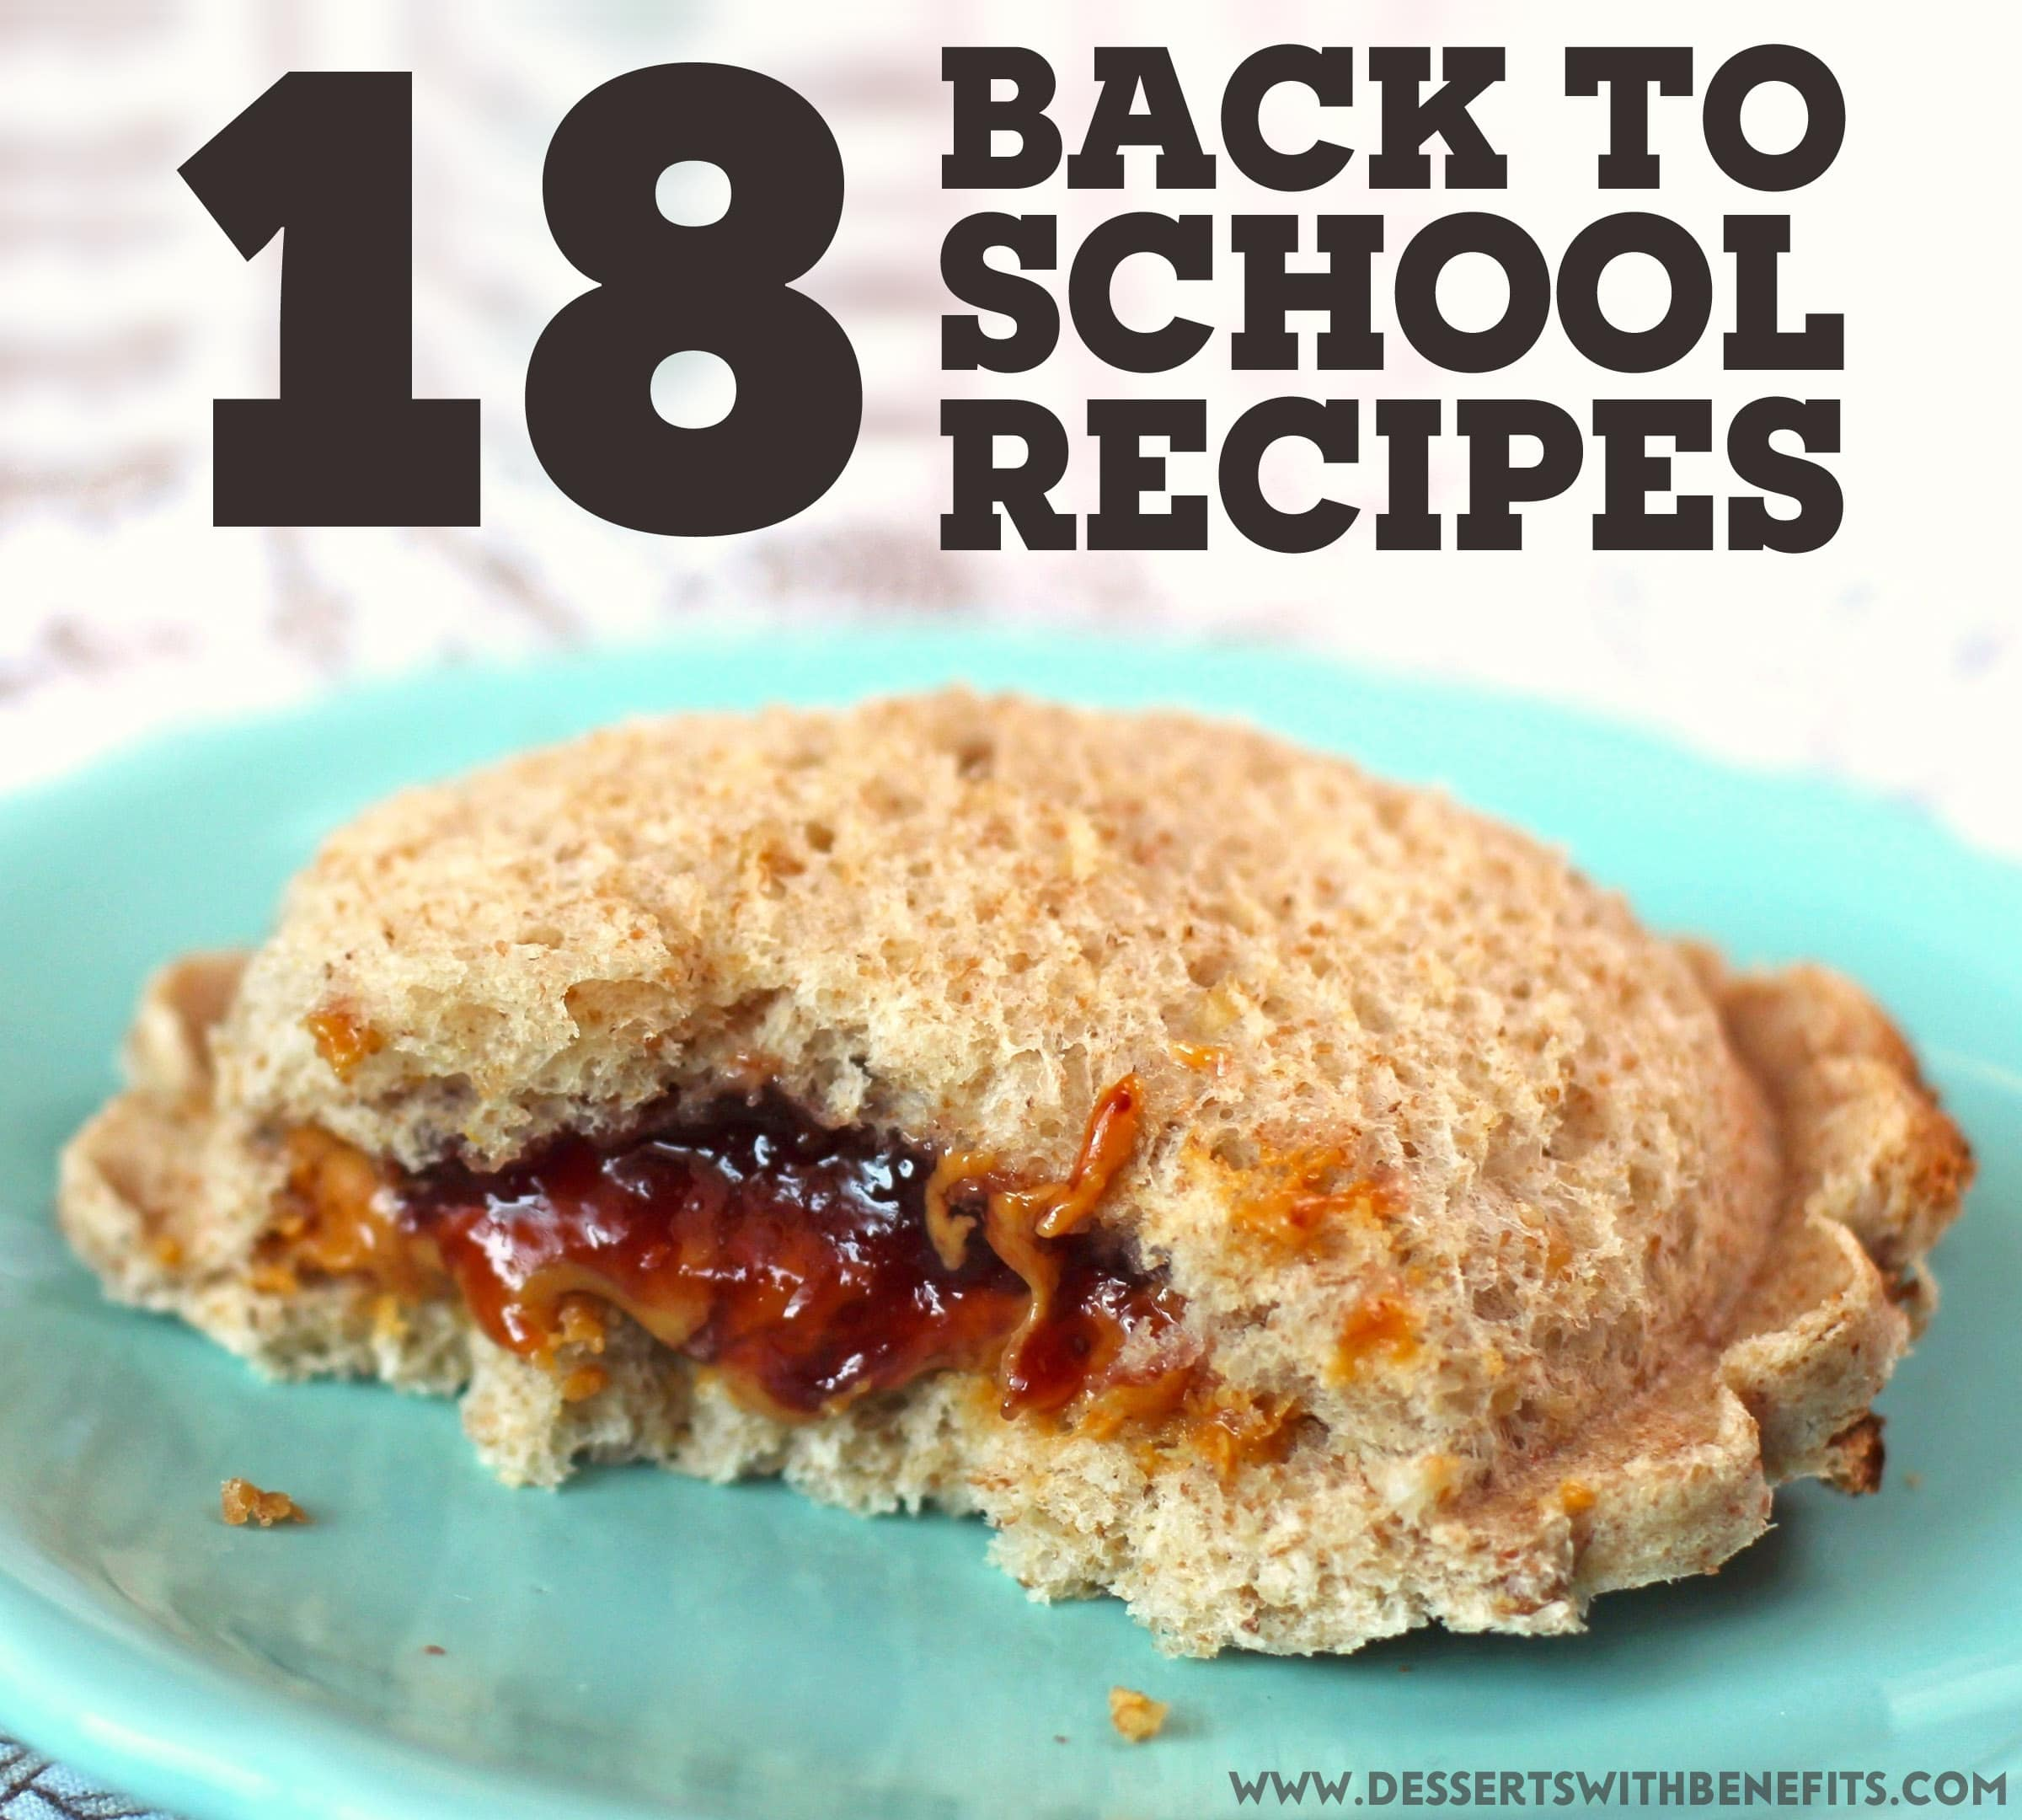 18 easy, healthy Back To School recipes that anyone with a sweet tooth will enjoy! From no-bake granola bars to protein bars, DIY cereal to DIY gummy bears, cookies to brownies, and MORE! Healthy Dessert Recipes with sugar free, low calorie, low fat, low carb, high protein, gluten free, dairy free, vegan, and raw options at the Desserts With Benefits Blog (www.DessertsWithBenefits.com)